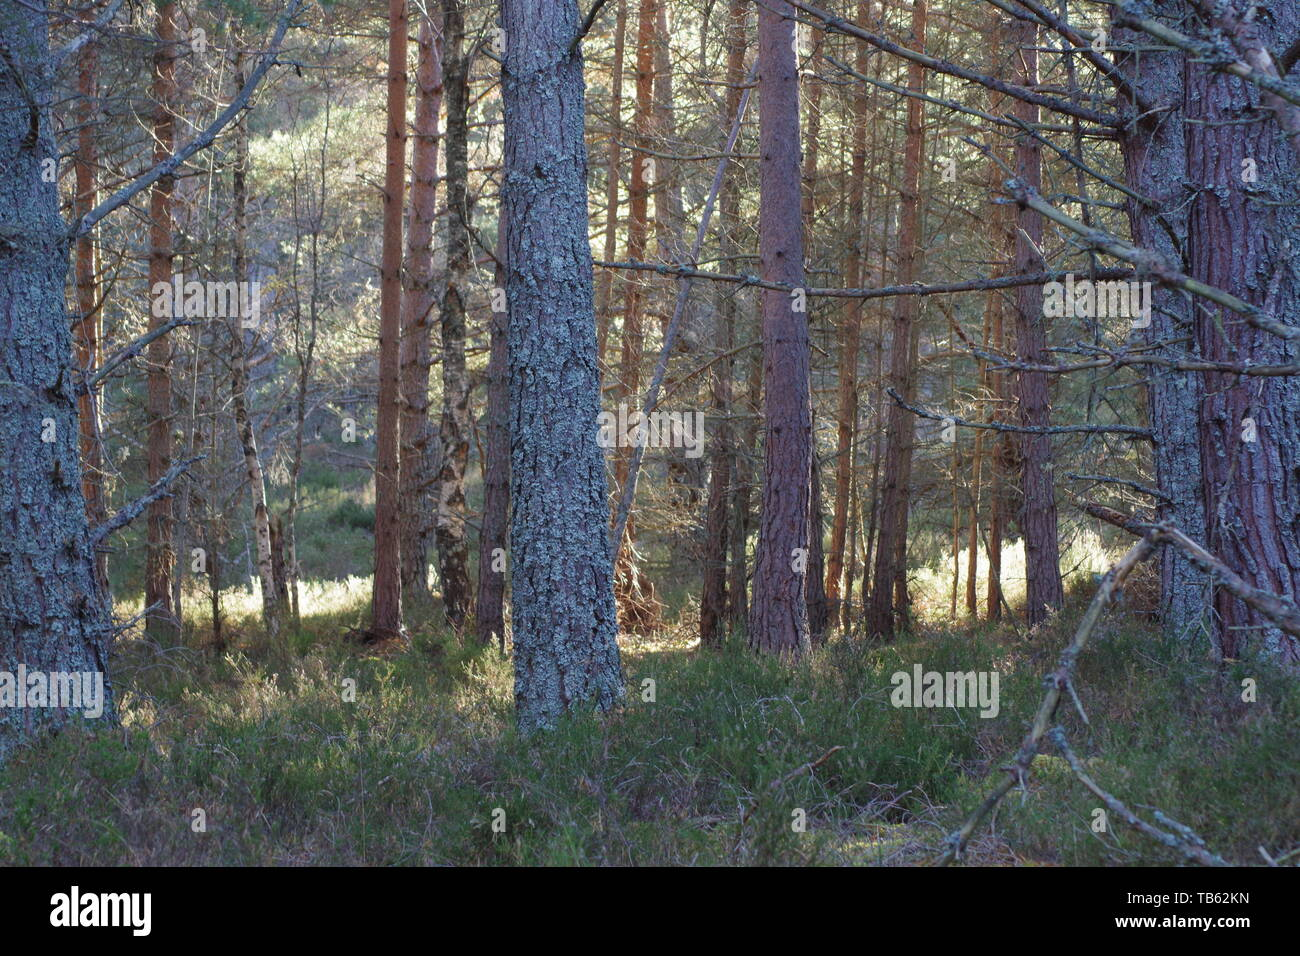 Tree Trunks of Scots Pine Woodland. Muir of Dinnet NNR, Cairngorms, Scotland, UK. - Stock Image